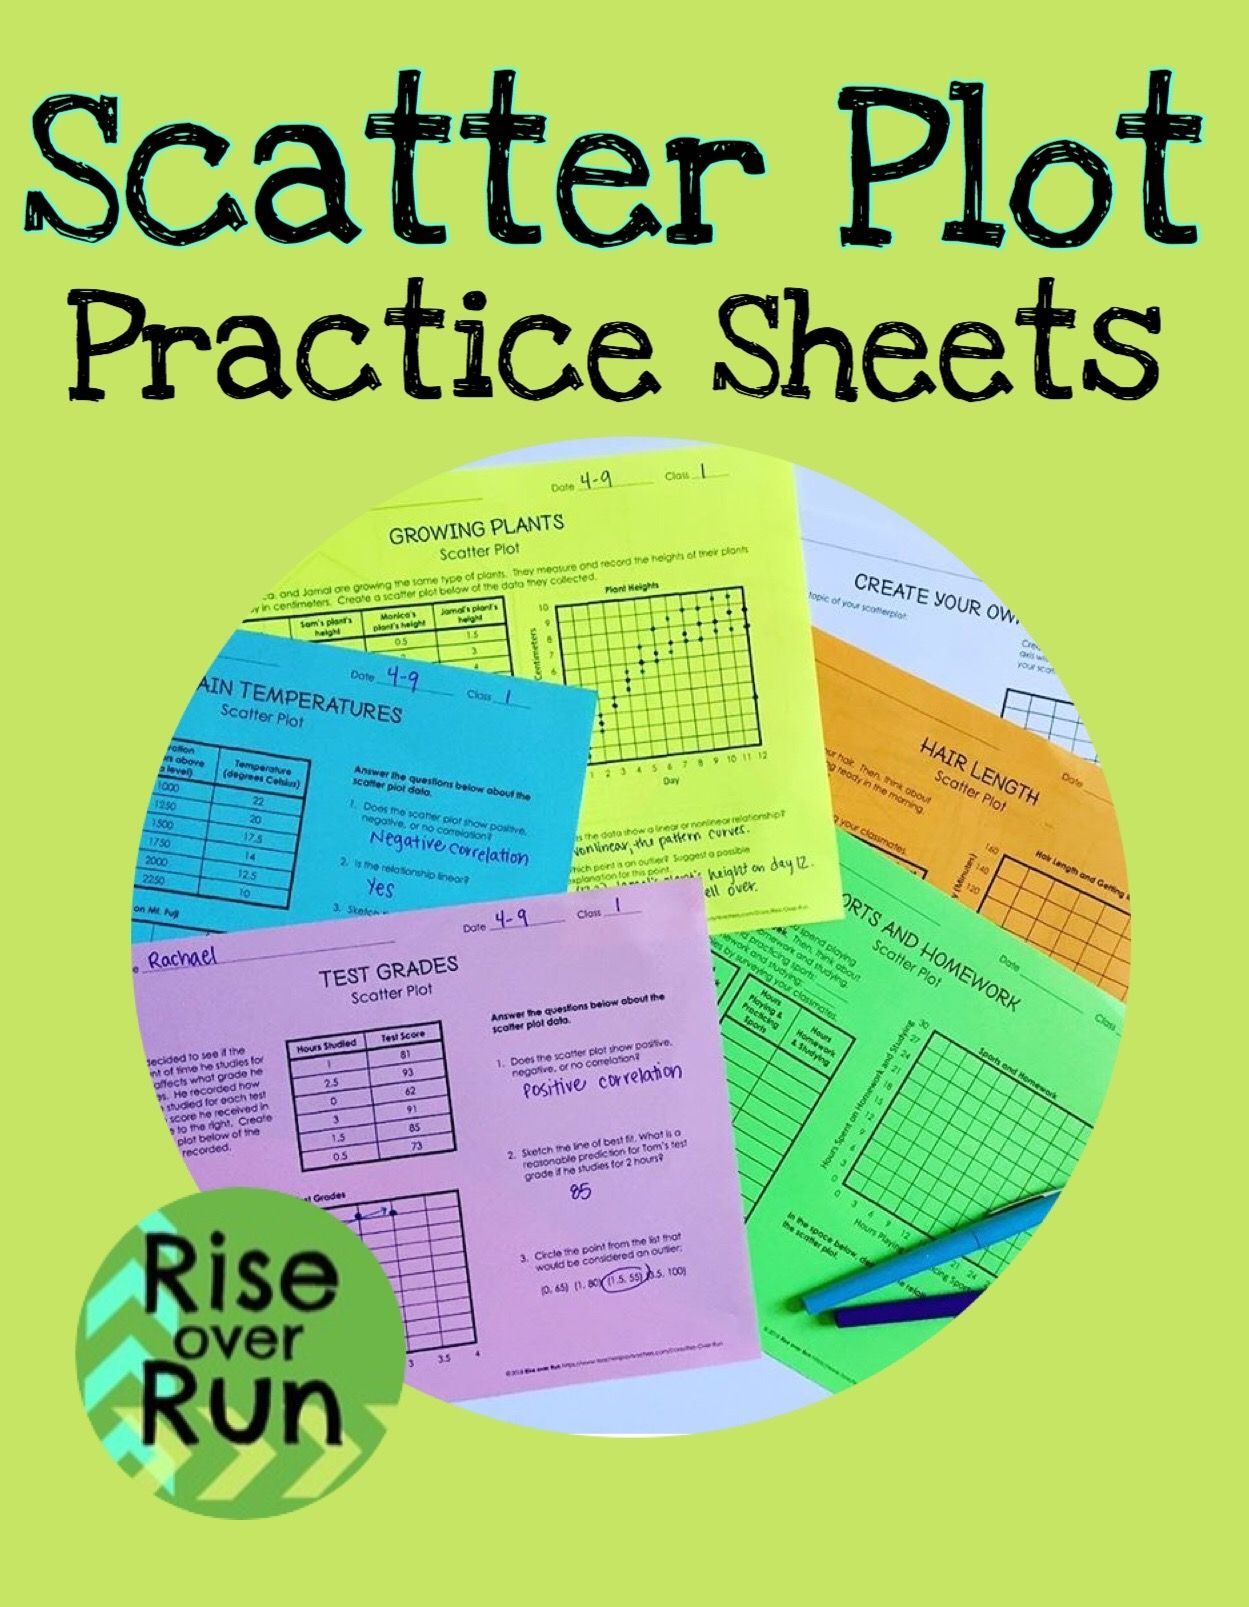 hight resolution of Scatter plot practice worksheets and blank template to create your own.  Line of best fit